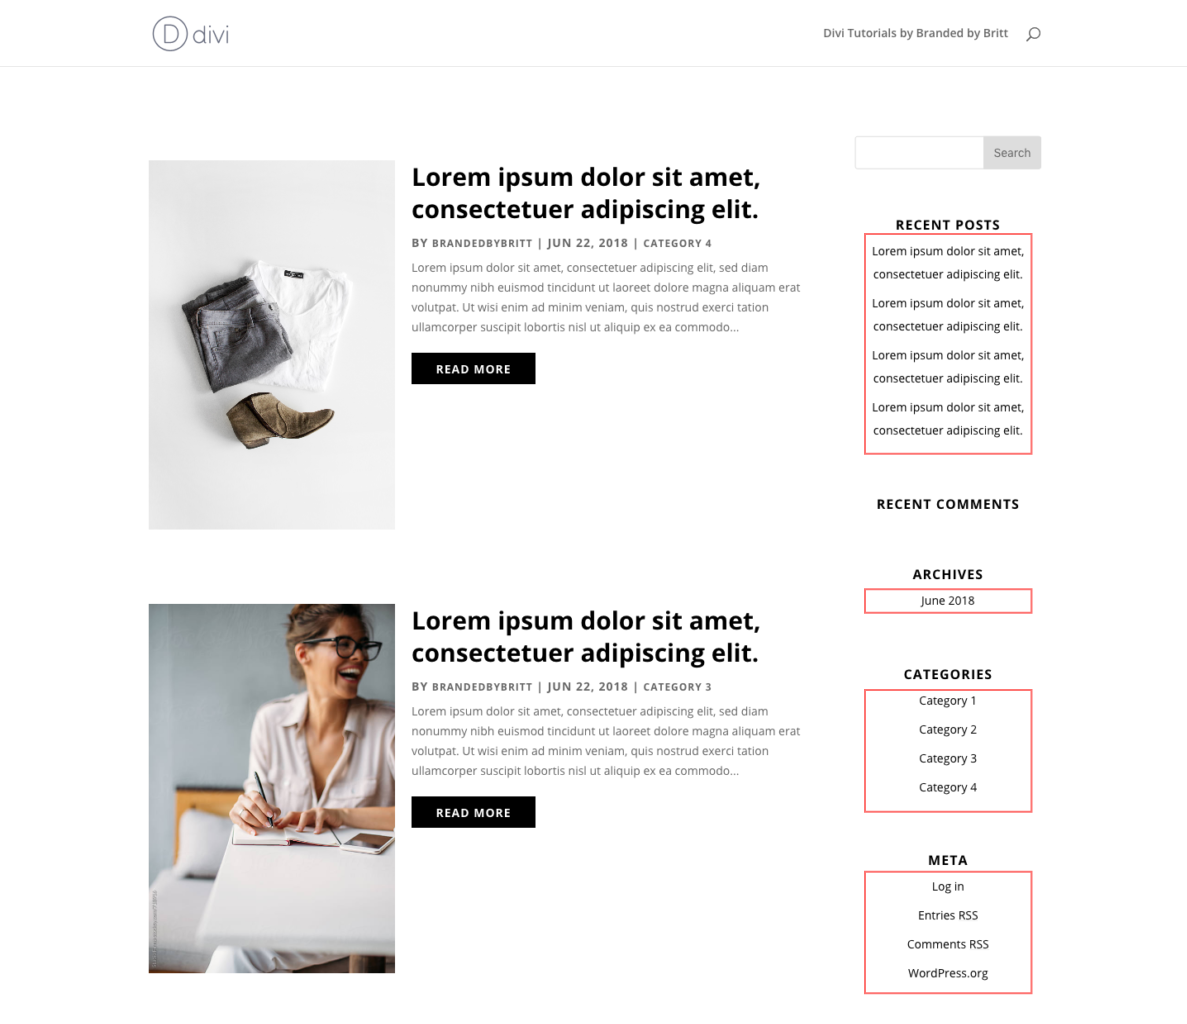 How To Style Your Divi Blog Page | Branded by Britt